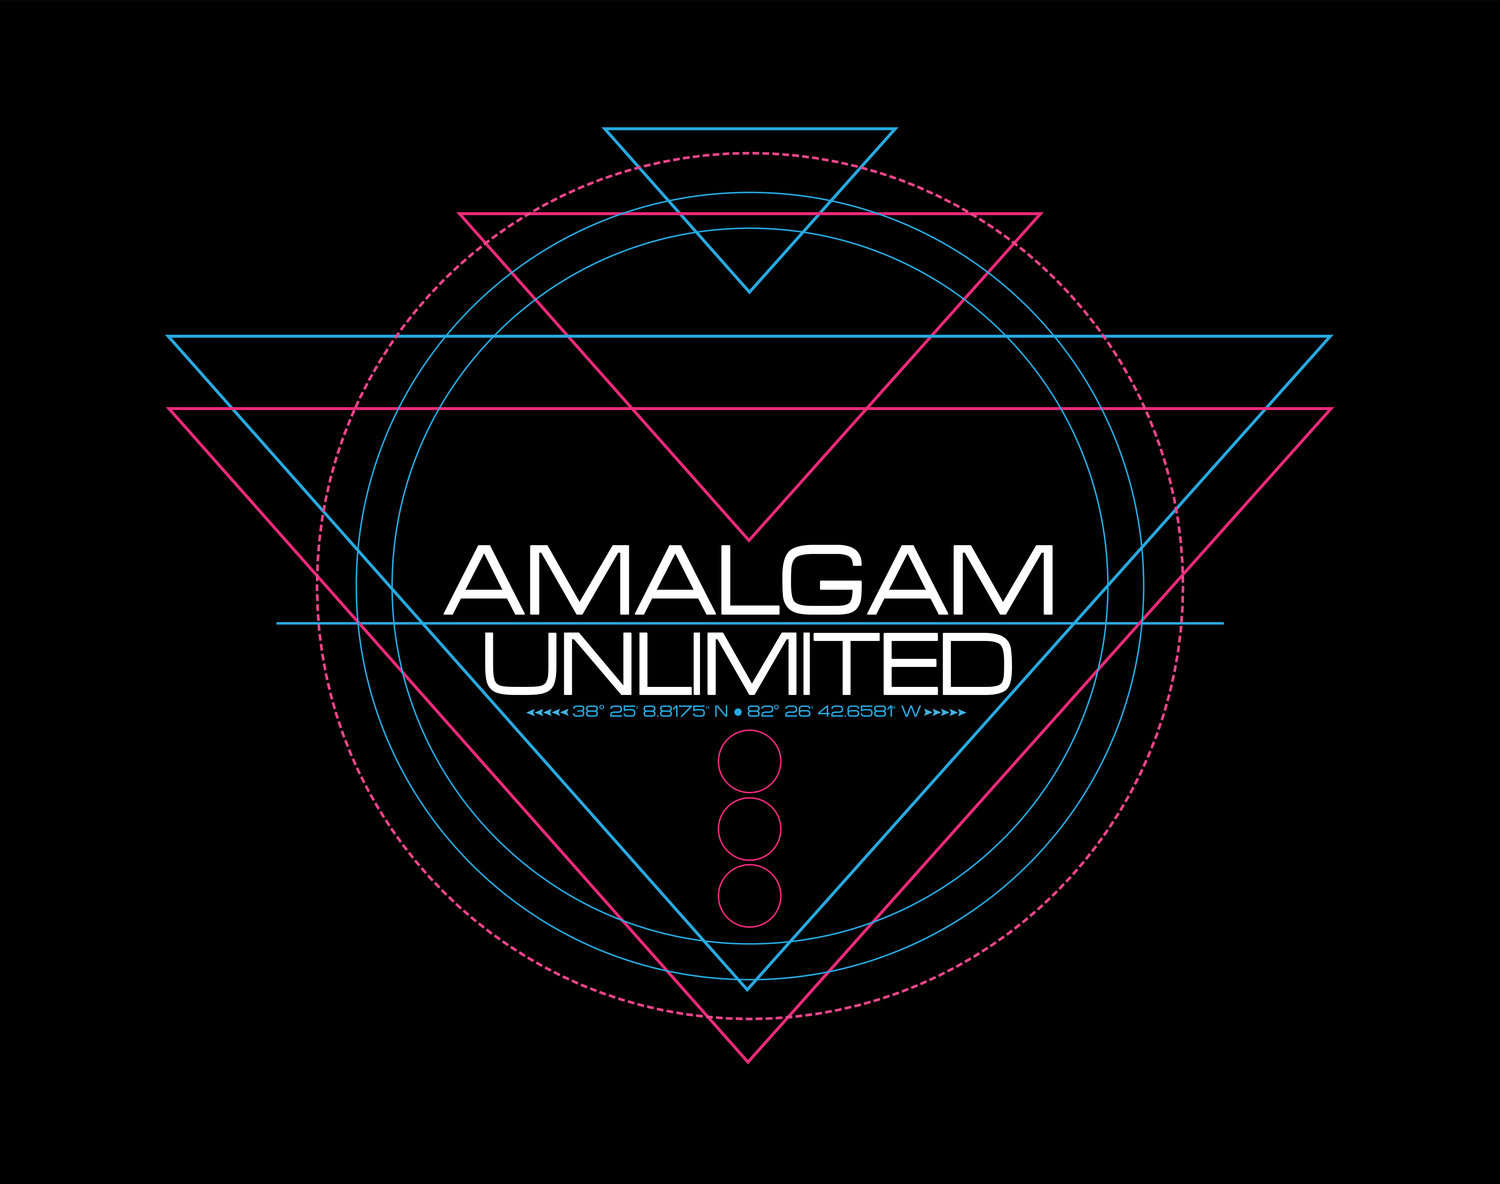 Amalgam Unlimited